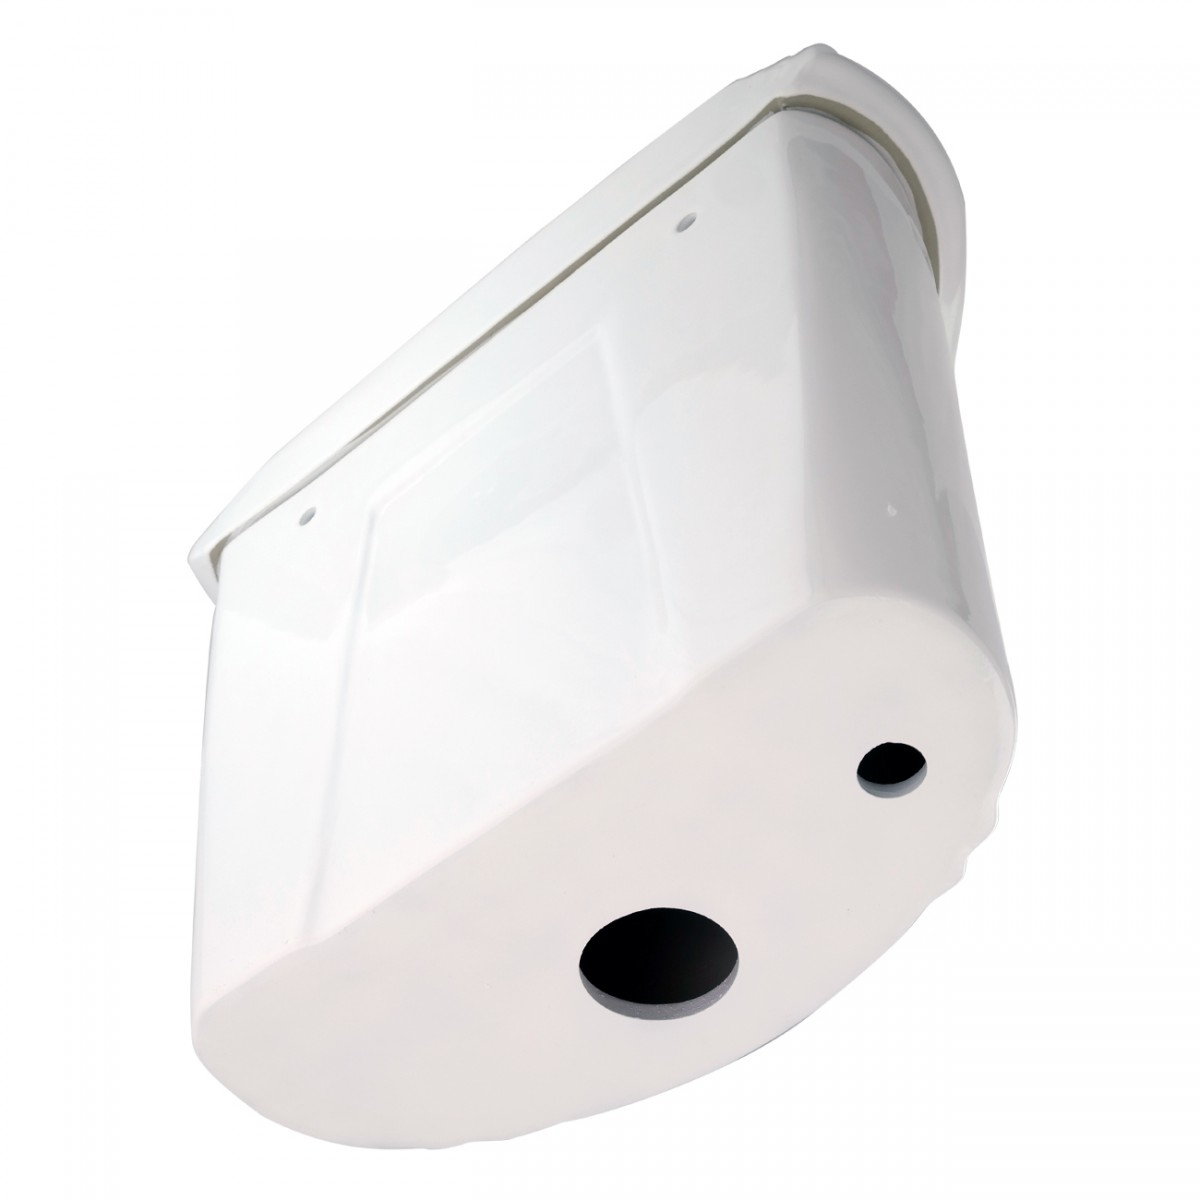 White Porcelain High Tank Toilet with Brass LPipe and Elongated Toilet Bowl High Tank Pull Chain Toilets High Tank Toilet with Elongated Bowl Old Fashioned Toilet